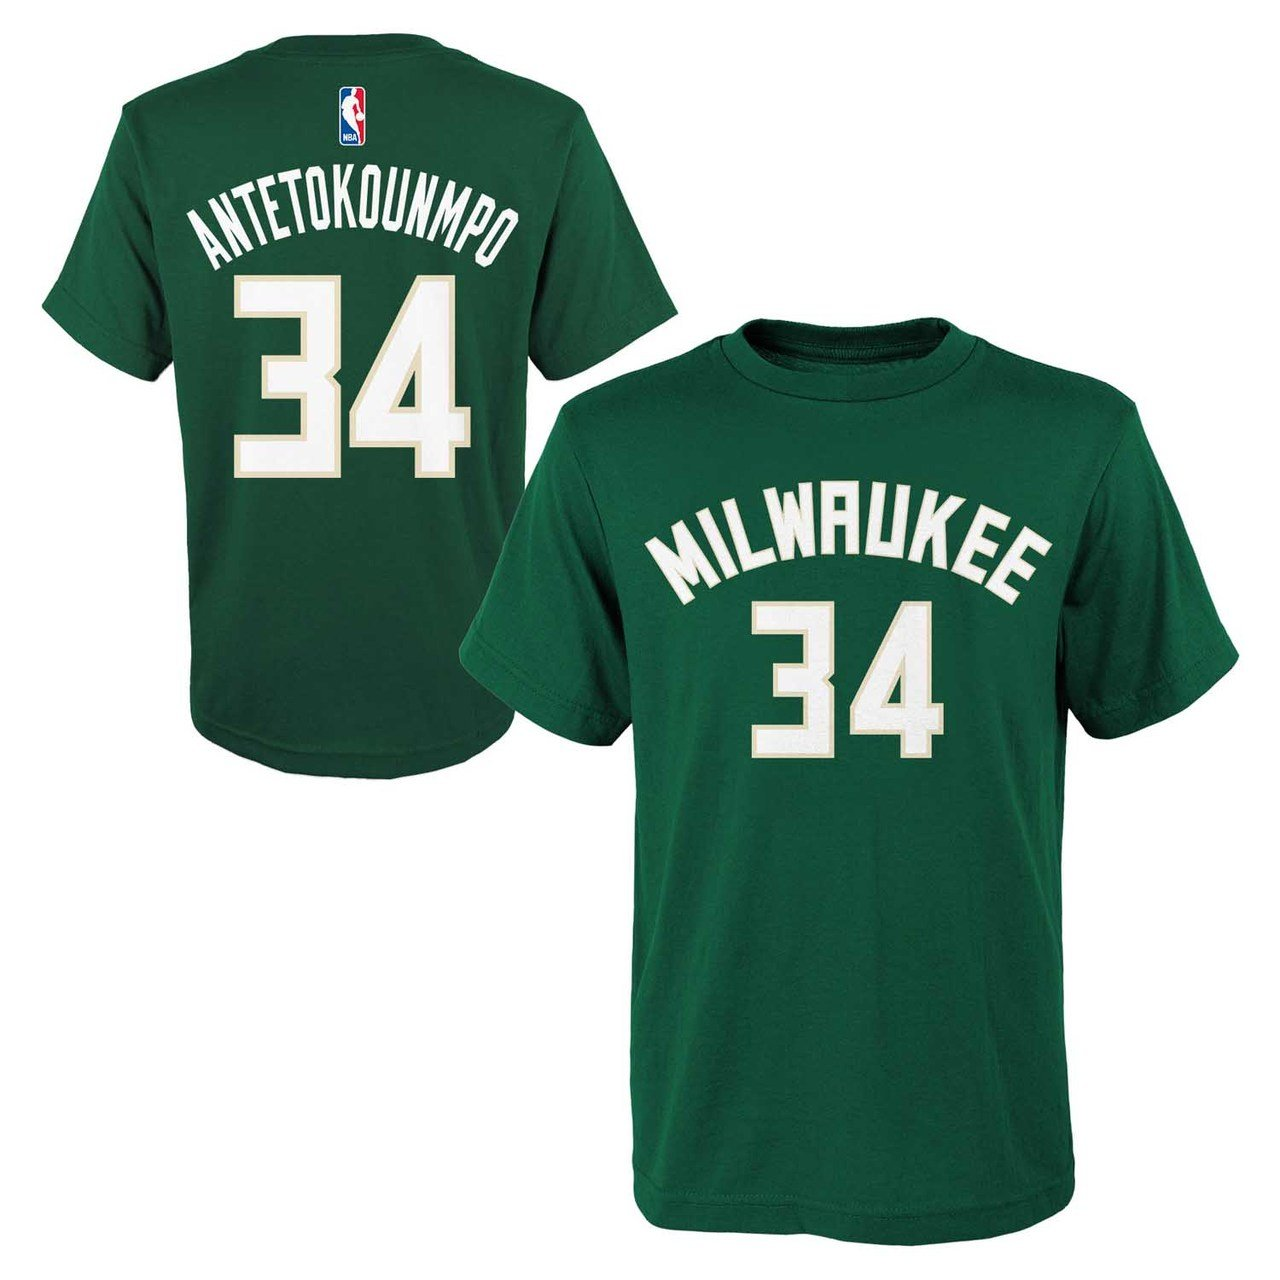 official photos d1a6e b5c75 Giannis Antetokounmpo Milwaukee Bucks #34 NBA Youth Player Name & Number  T-Shirt, Green